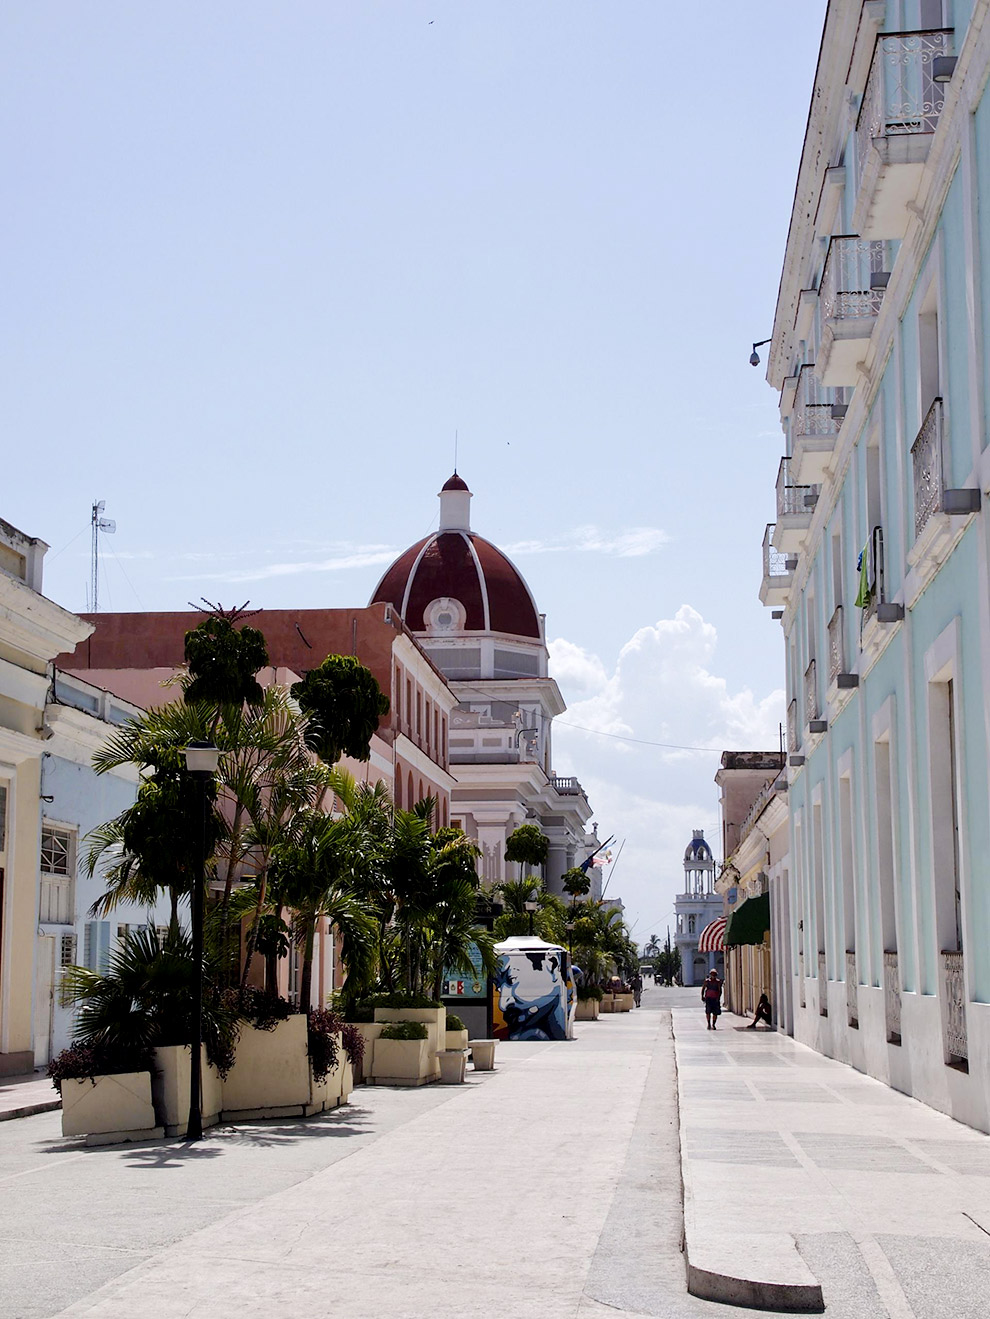 The streets of the French colonial city Cienfuegos